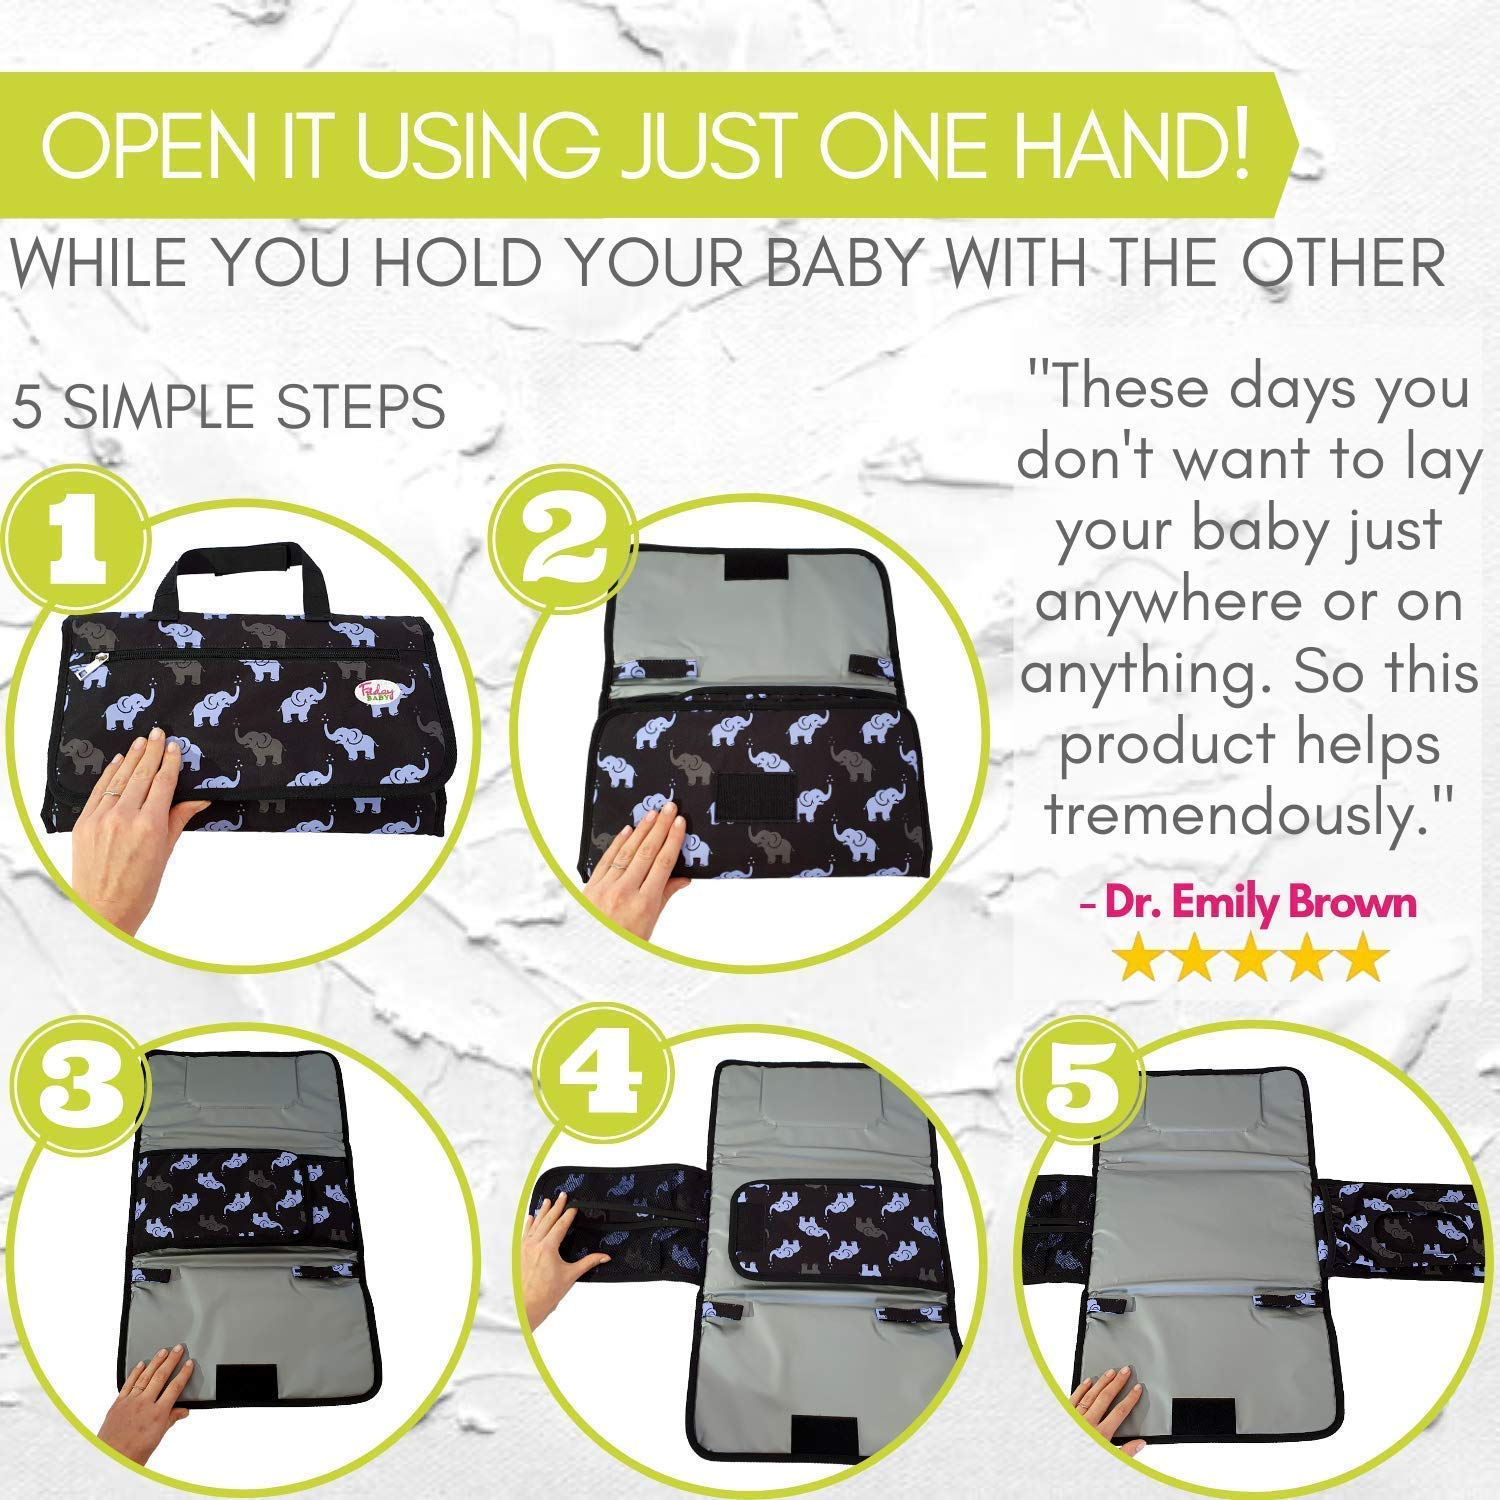 Fridaybaby Portable Diaper Changing Pad – Use One Handed - Slim and Easy to Clean Waterproof Diaper Clutch w/Pockets for Wipes and Diapers   Travel Changing Pad for Diaper Bag   Elephant Baby Stuff